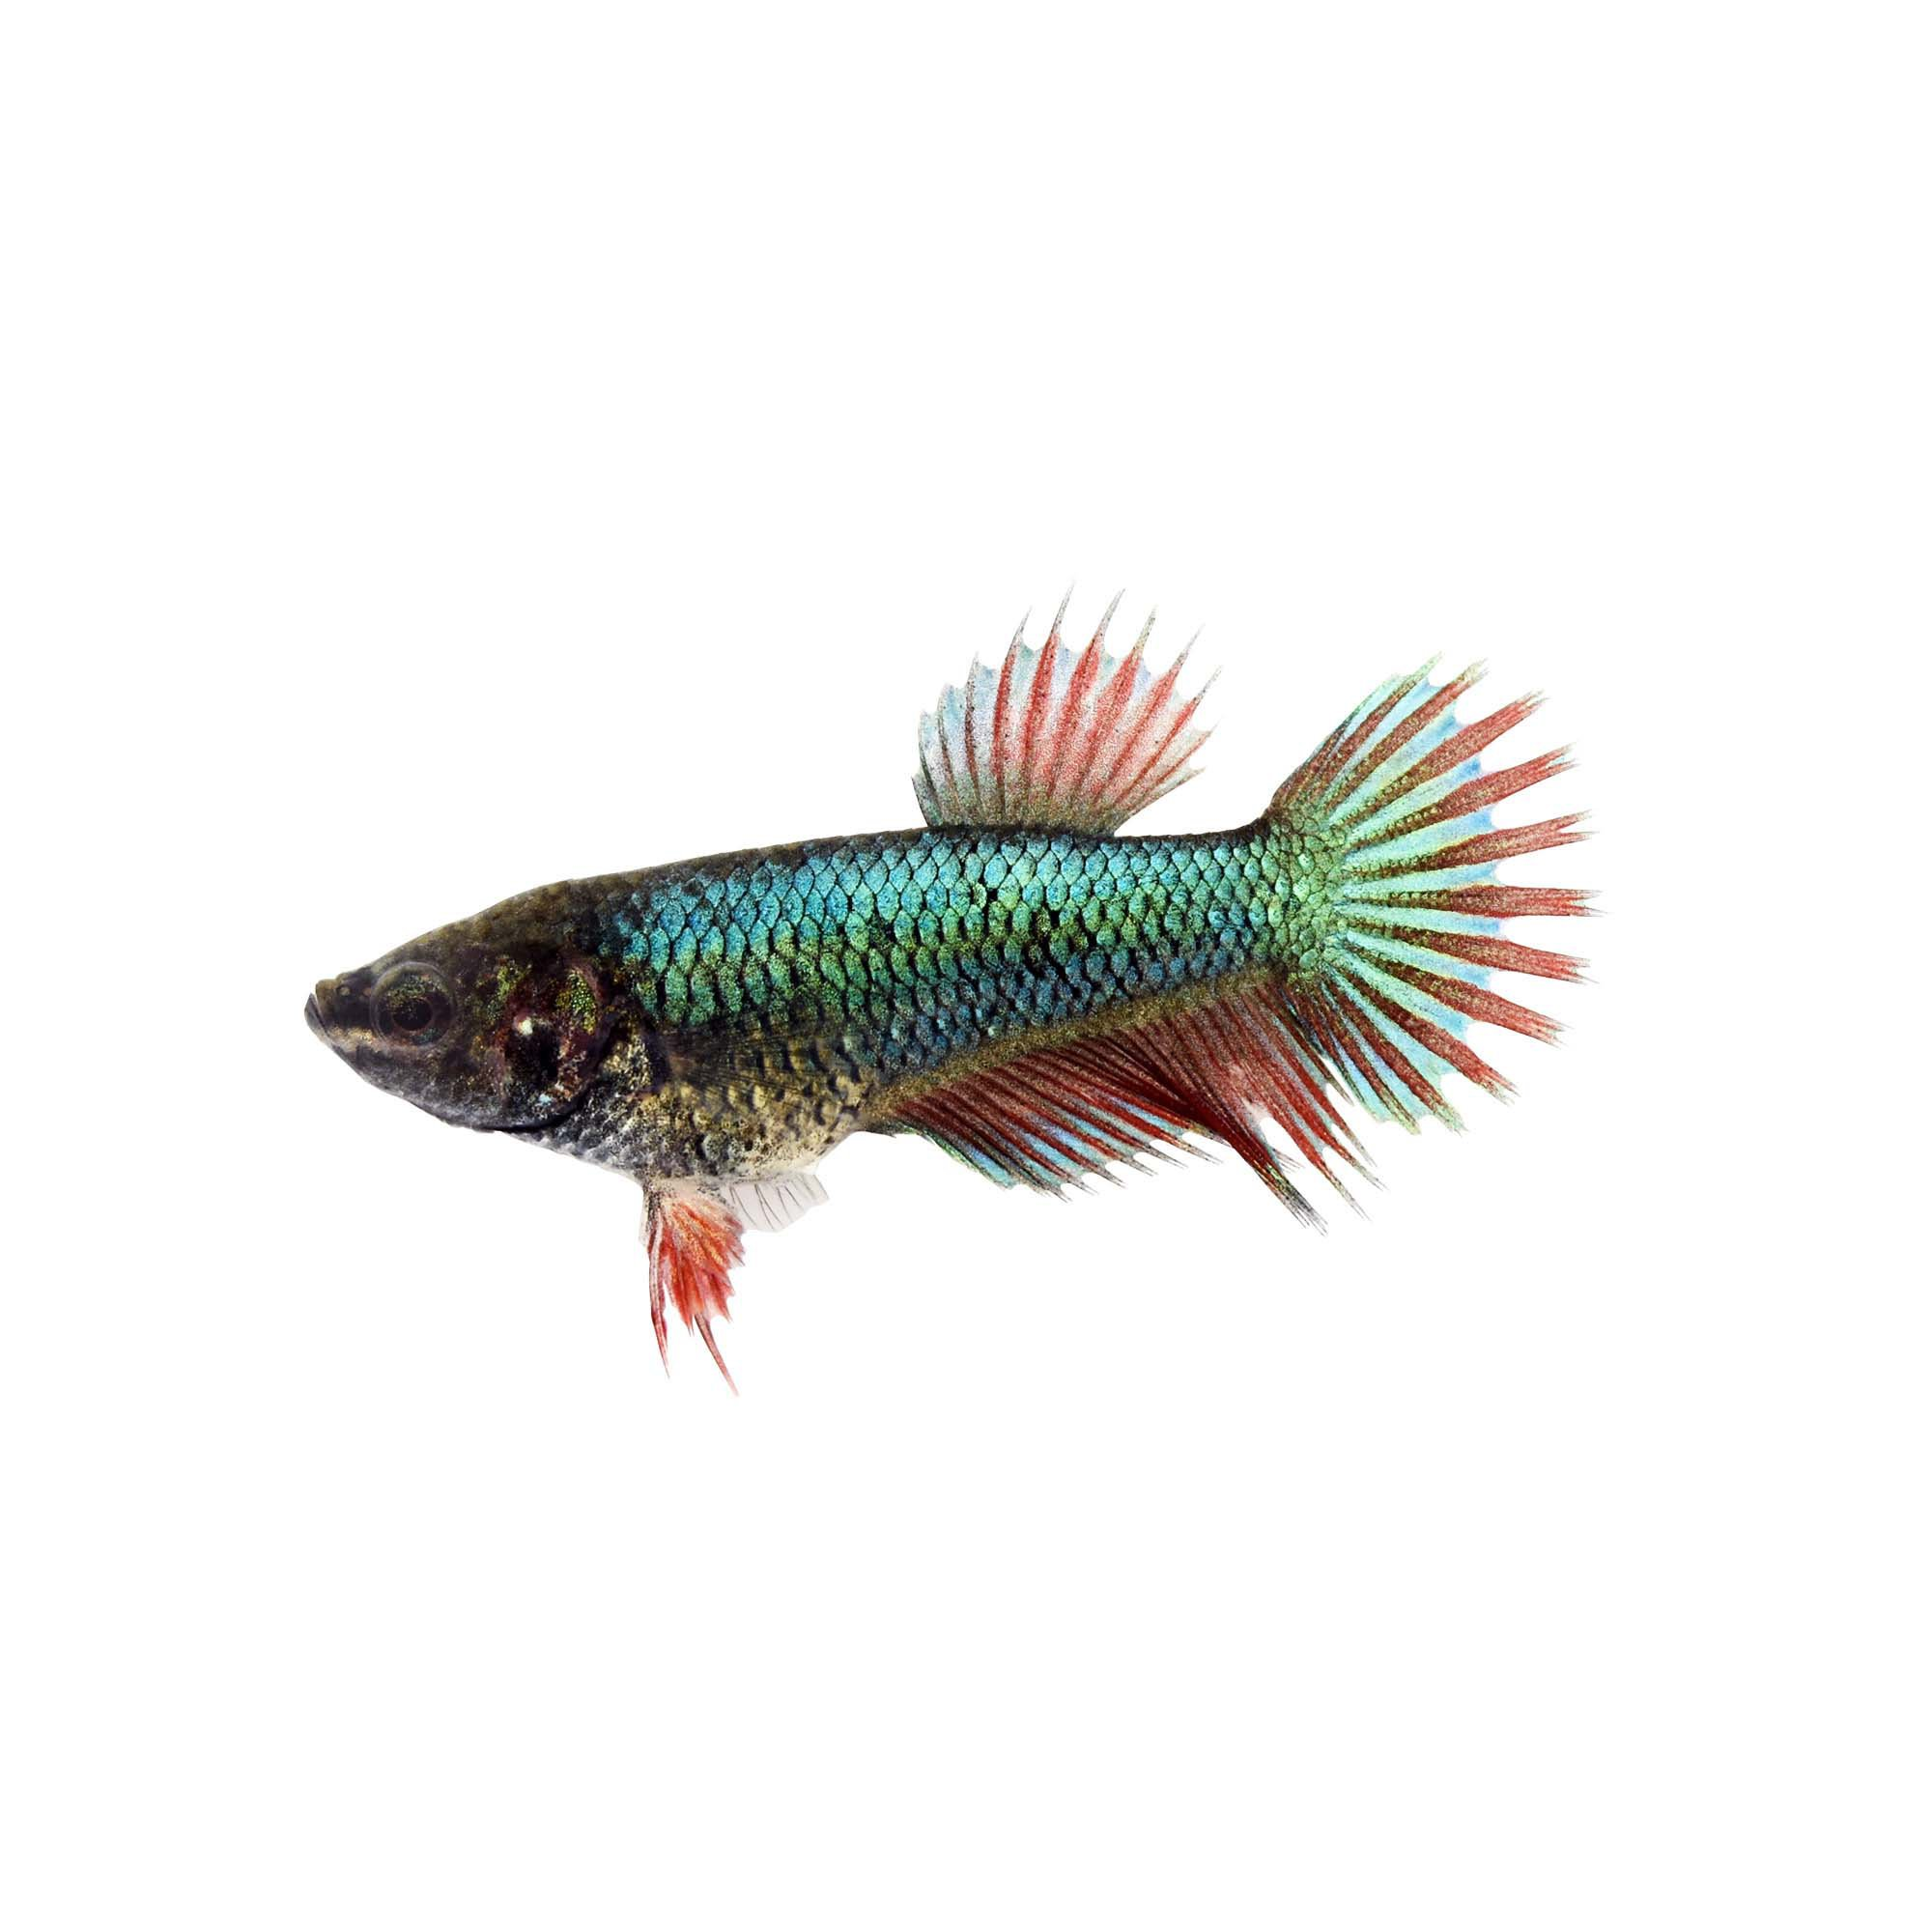 Female Crowntail Betta Fish Siamese Fighting Fish